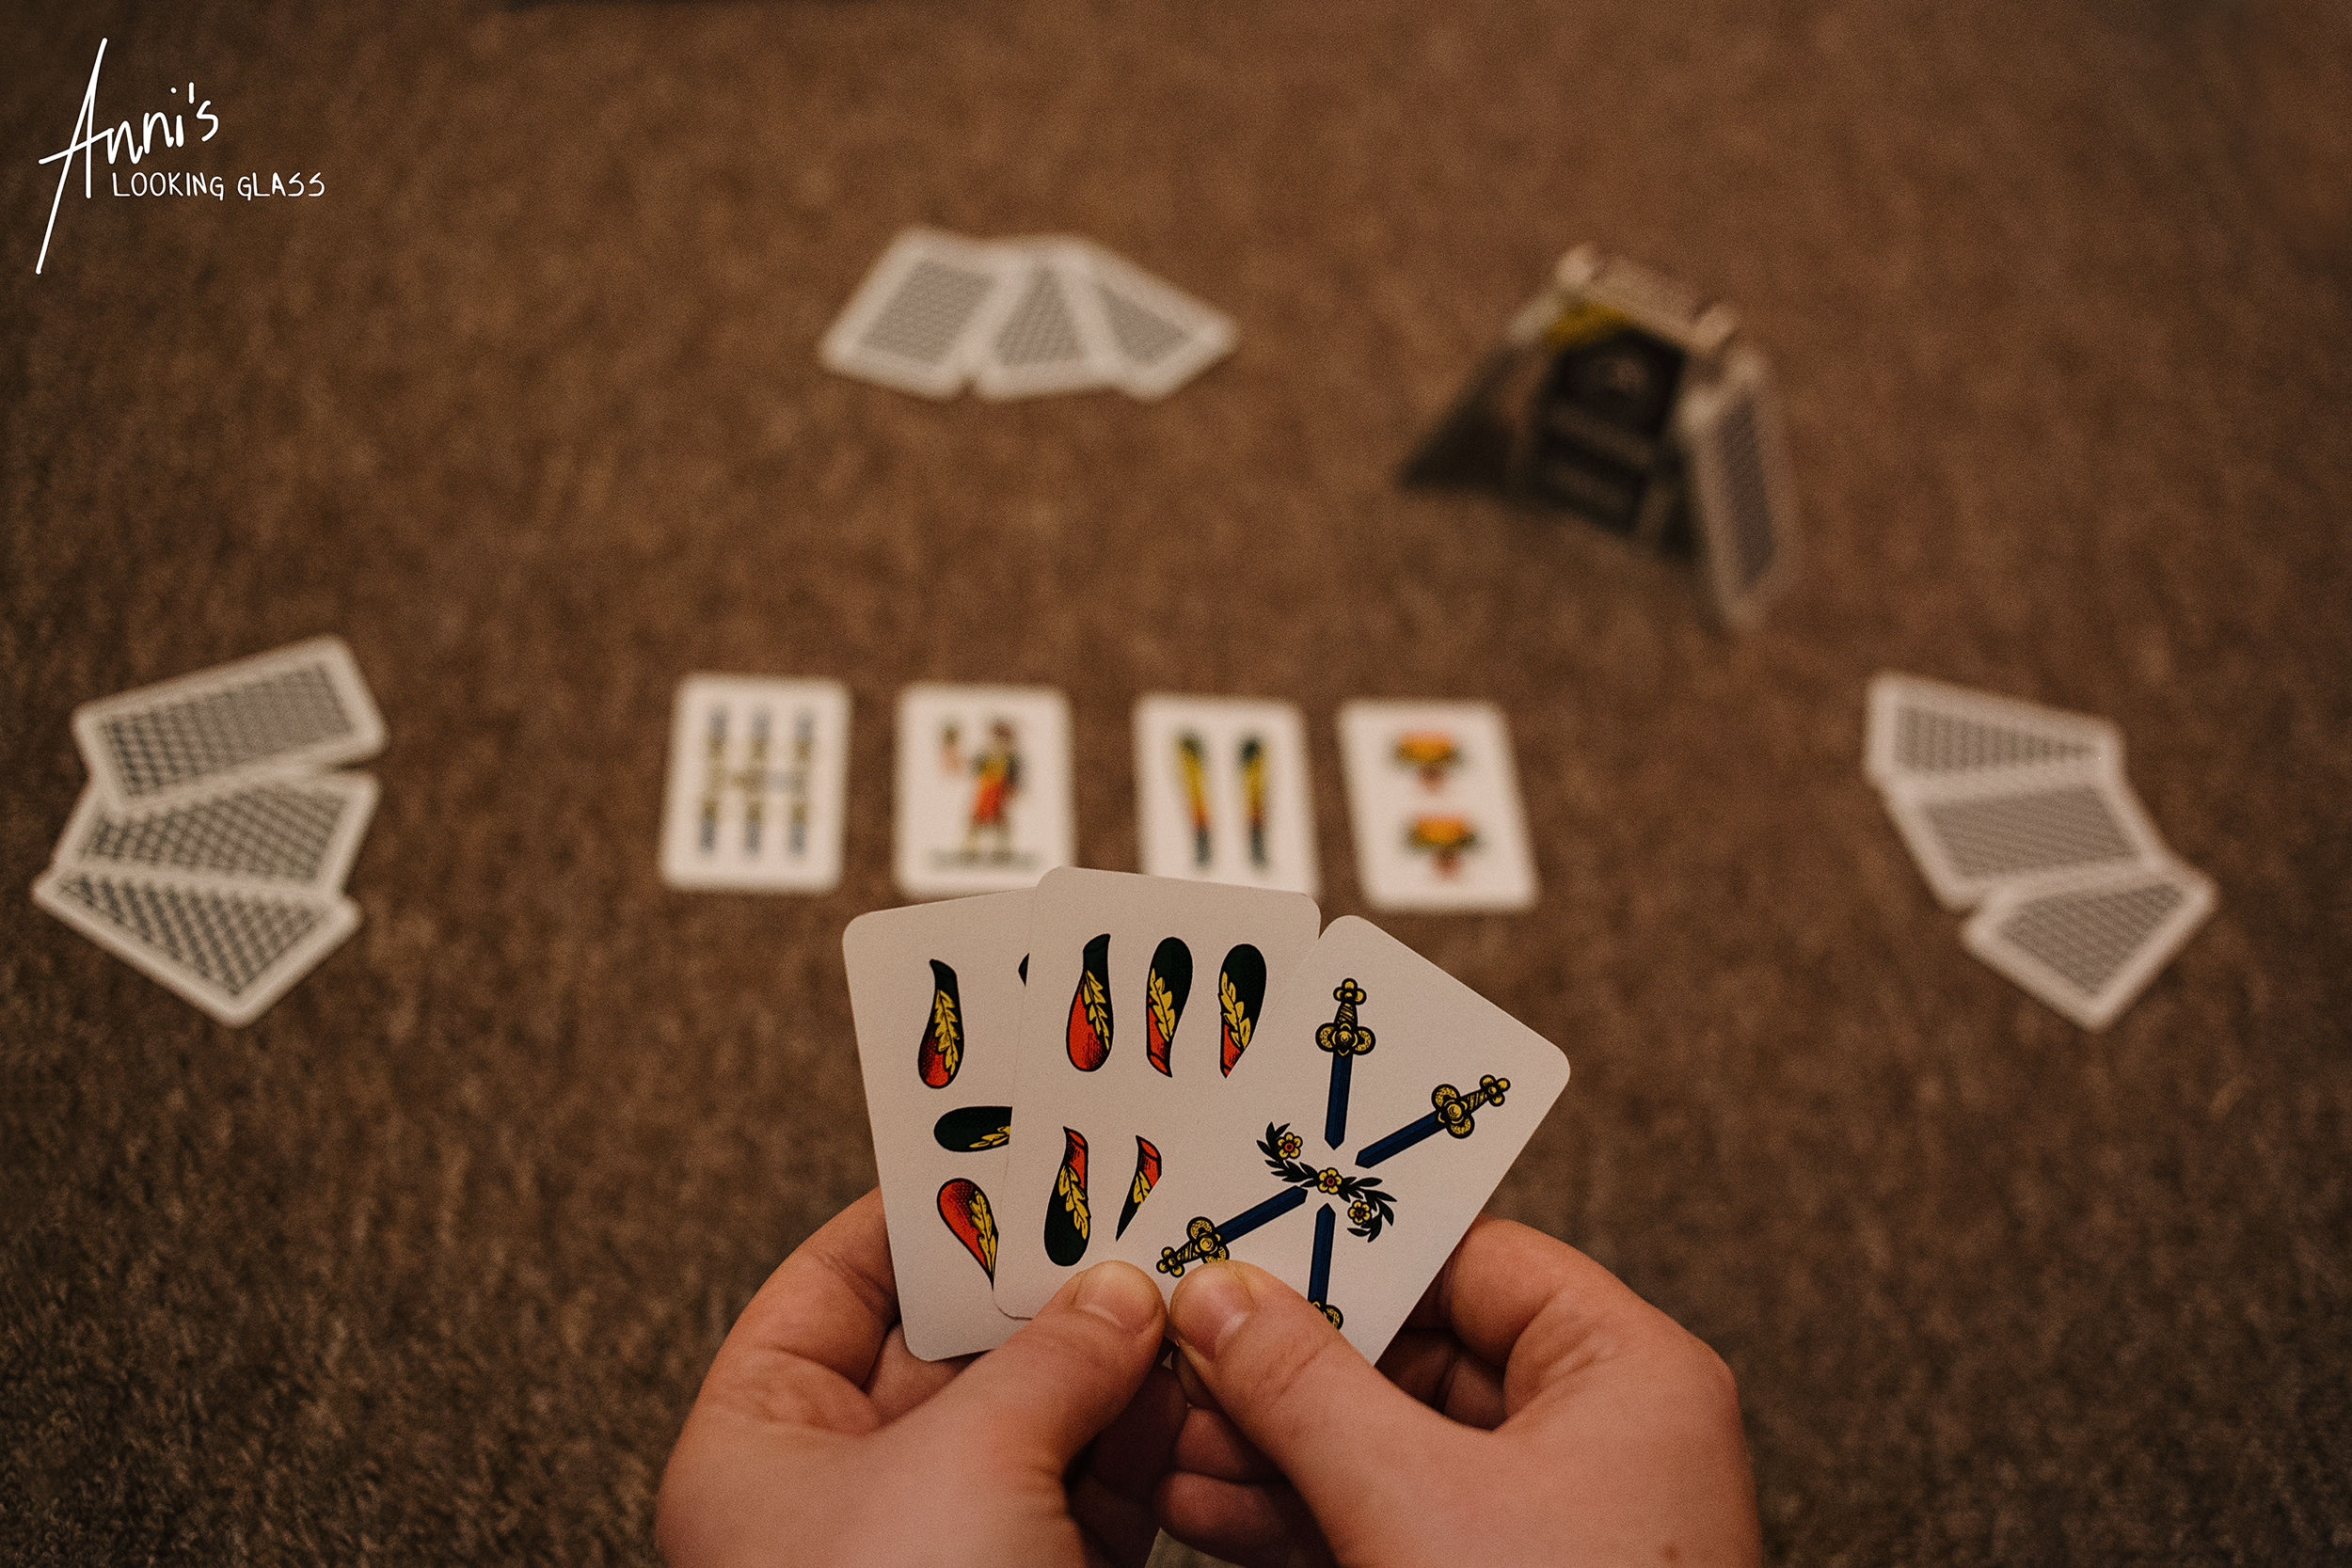 A deck of the Italian card game Scopa is set up for four players